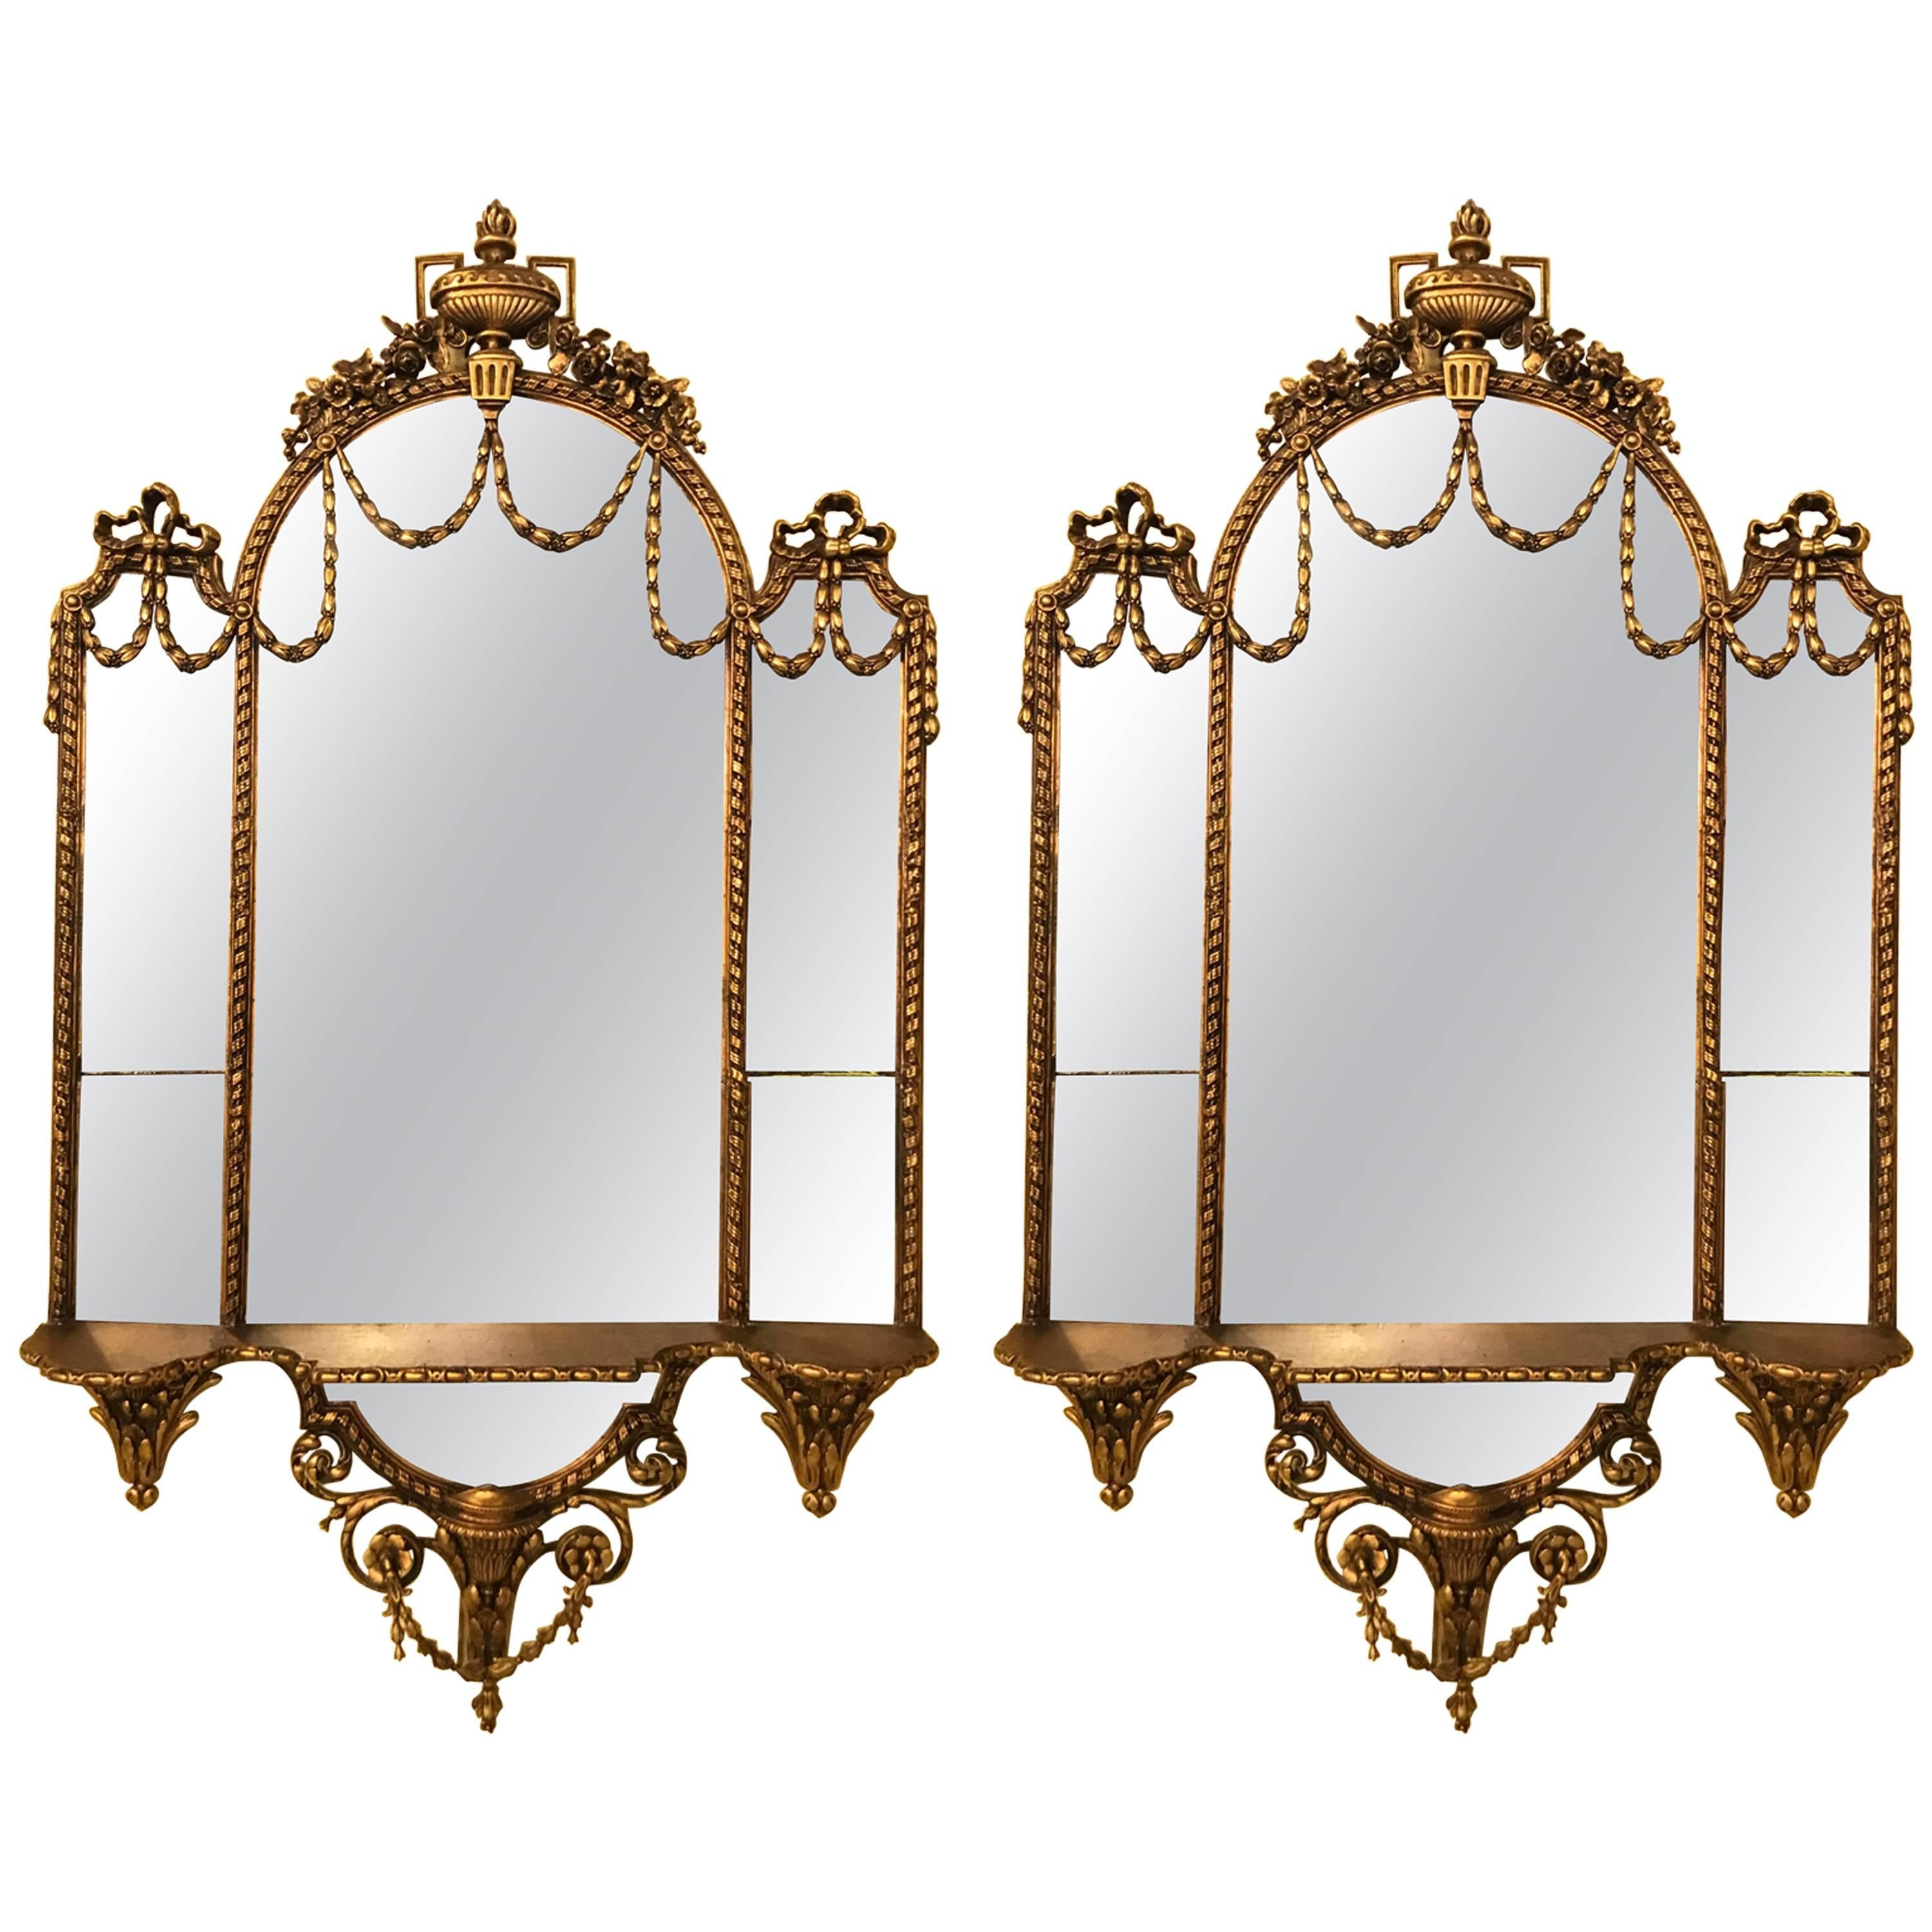 Pair of George III Style Giltwood and Composite Shelved Wall / Console Mirrors